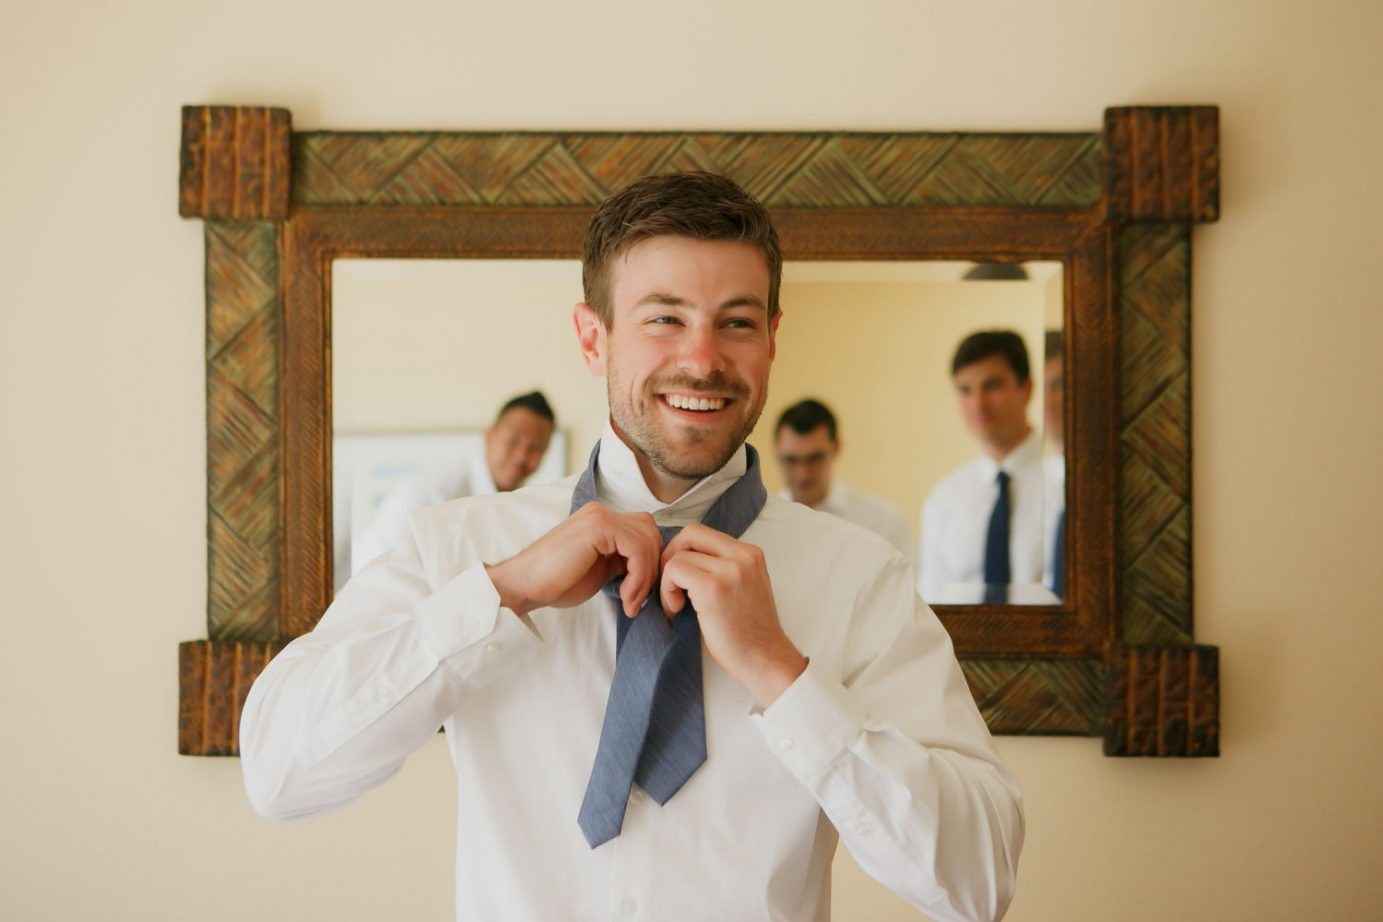 roche-harbor-wedding-groomsmen-groom-tying-tie